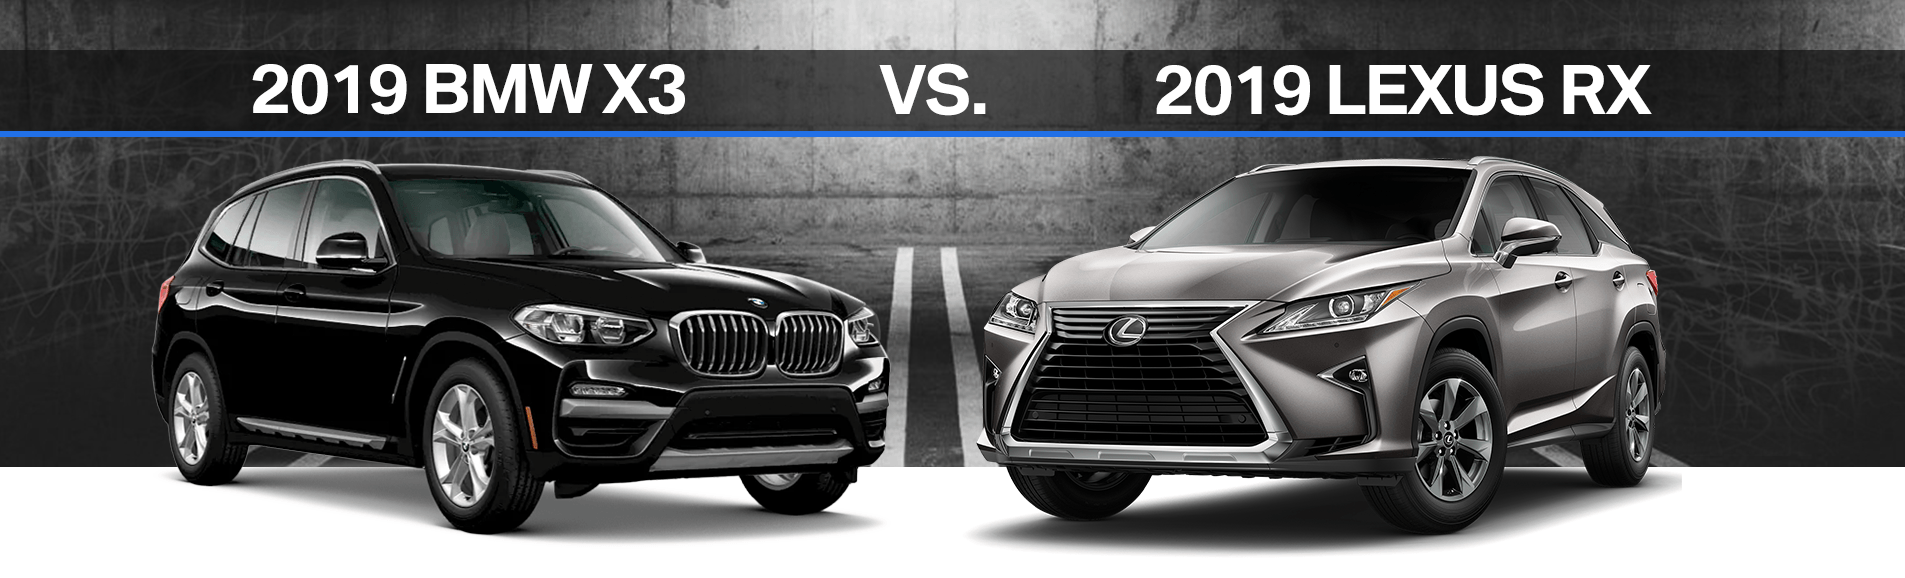 ELMHURST BMW 2019 BMW X3 COMPARISON